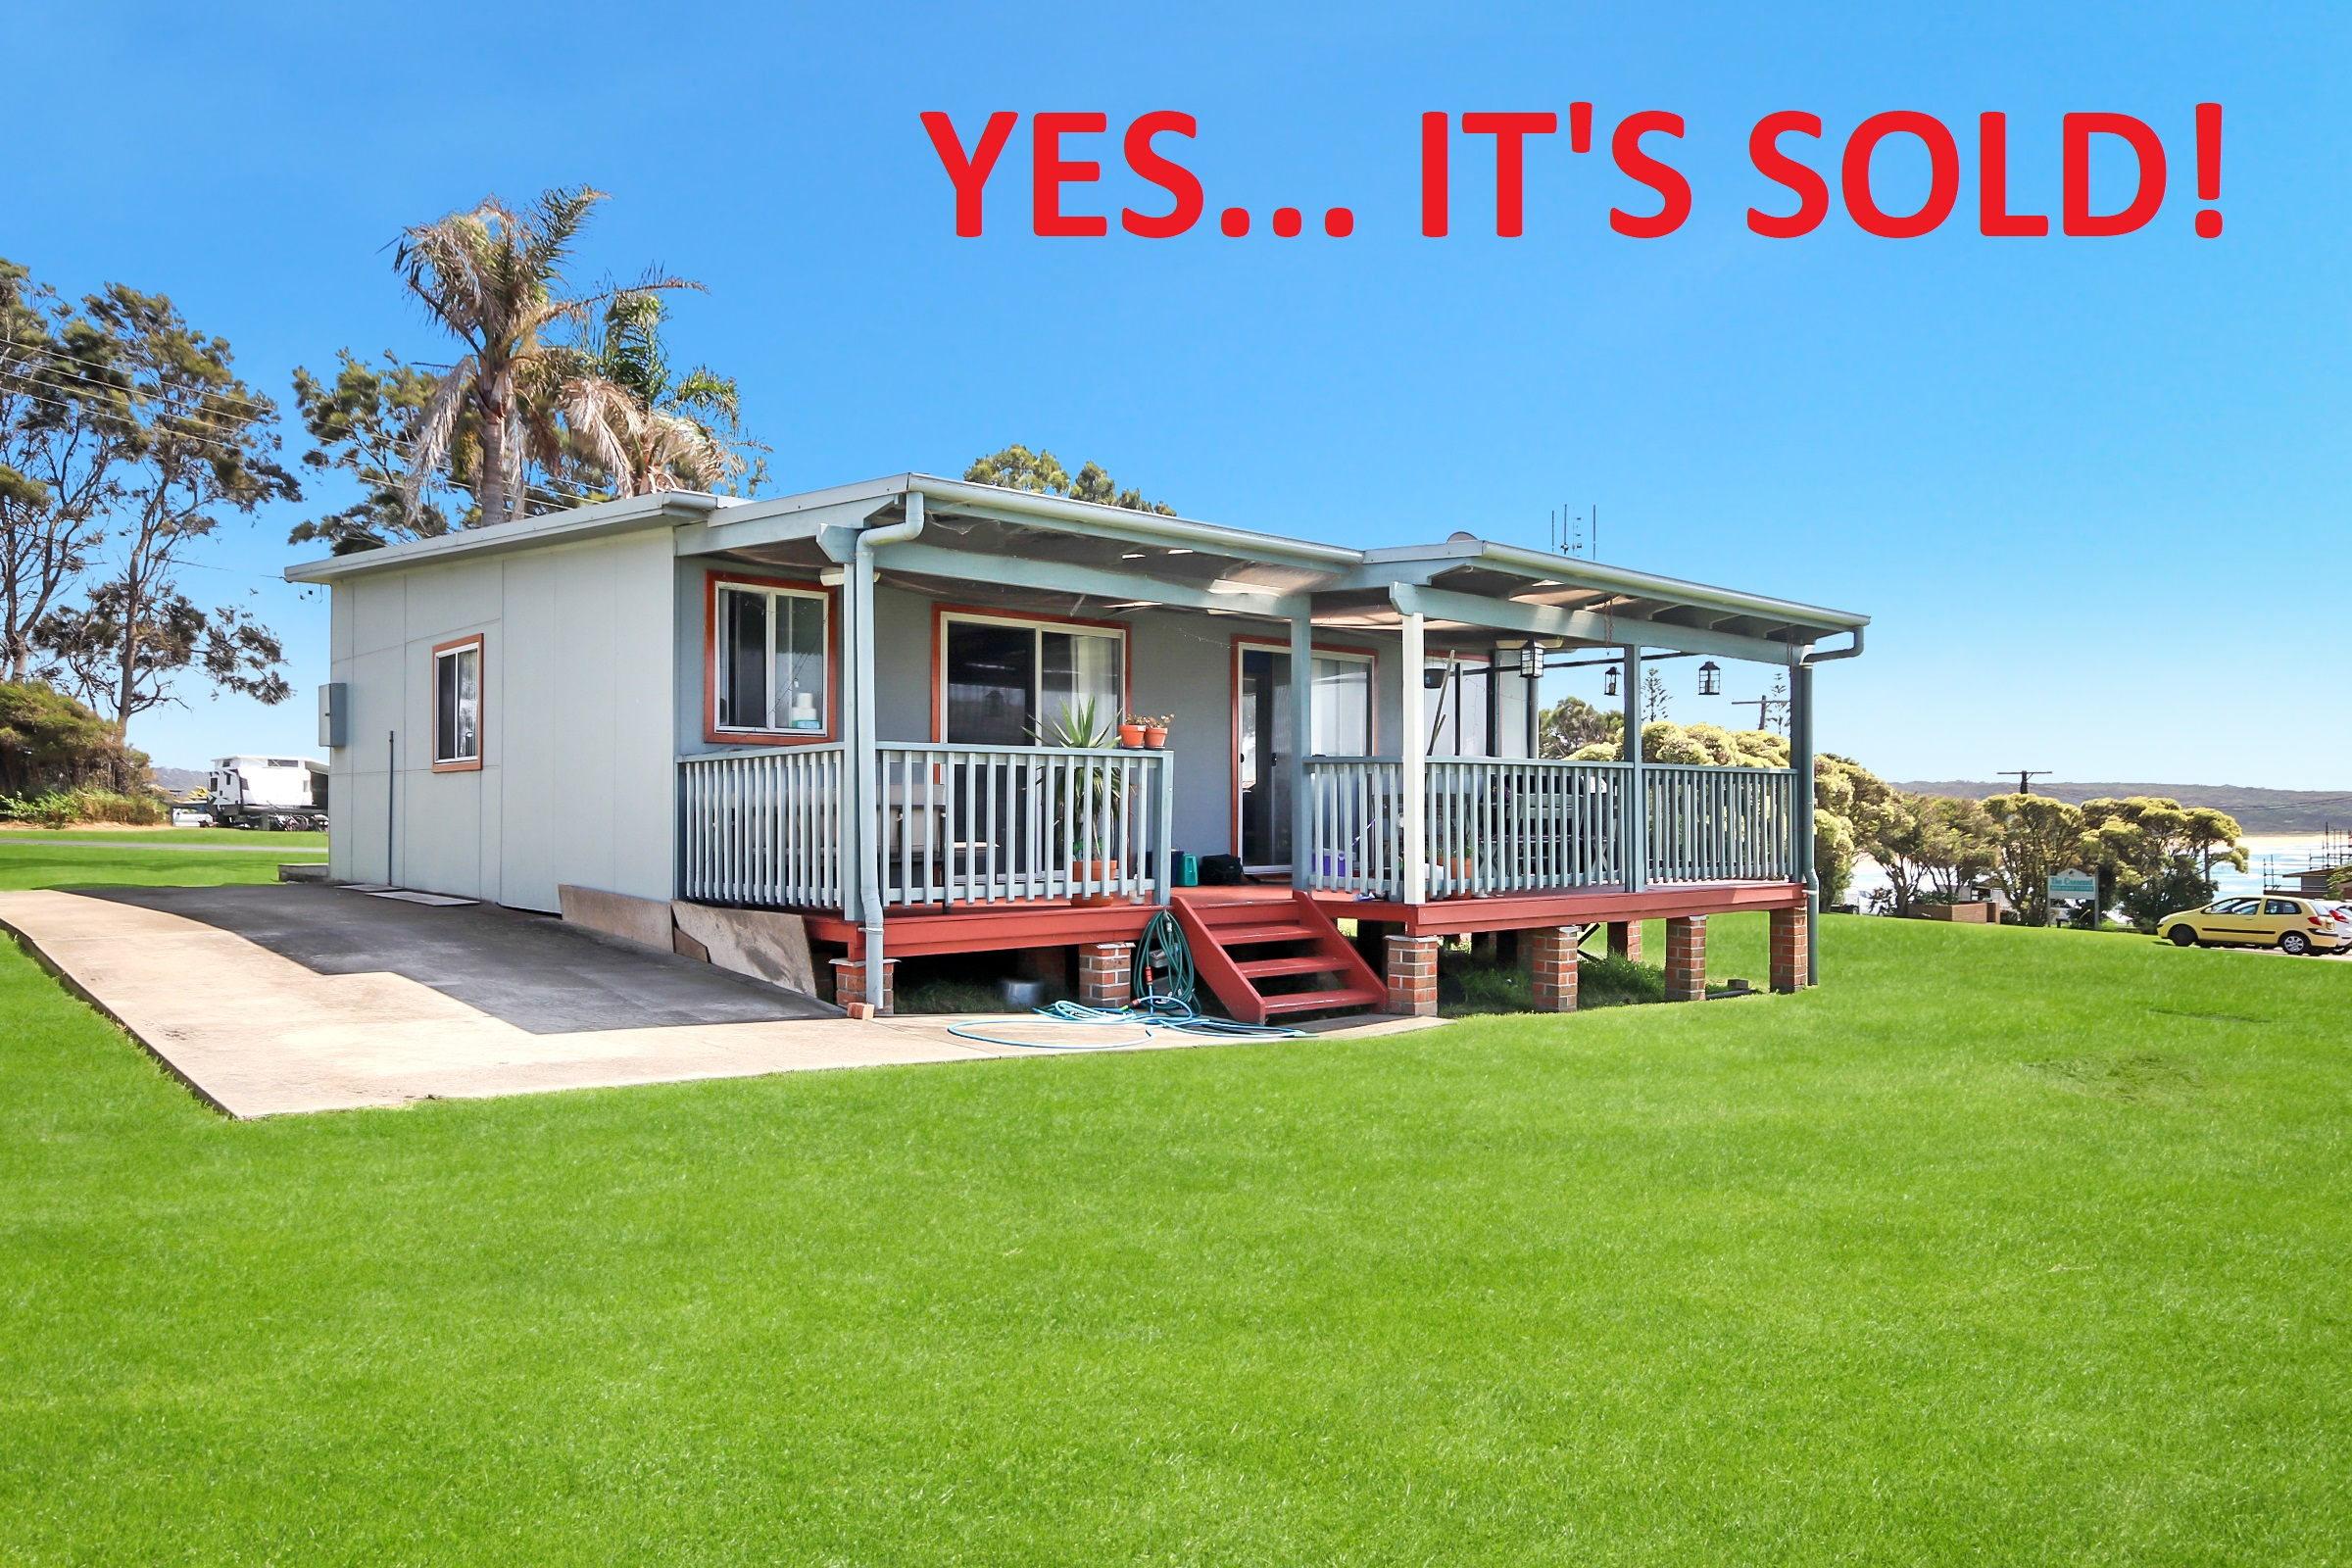 Rang Belinda to enquire about the property within two weeks we were the owners